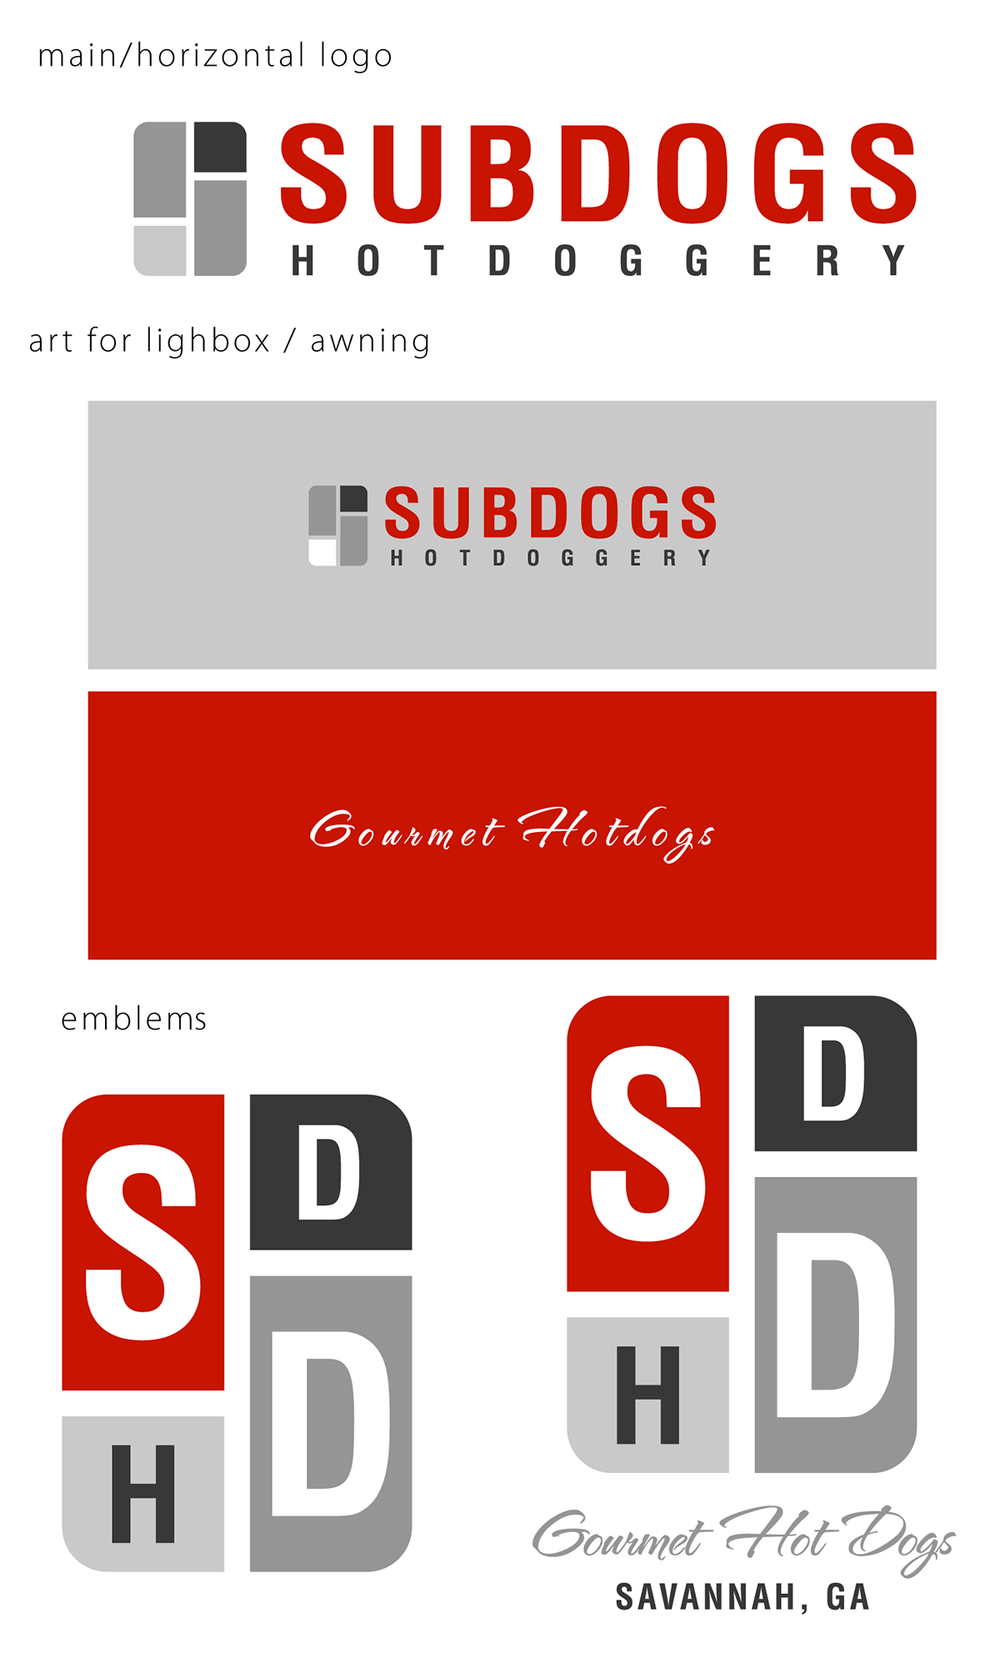 Subdogs Hotdoggery branding and logo | Savannah, GA